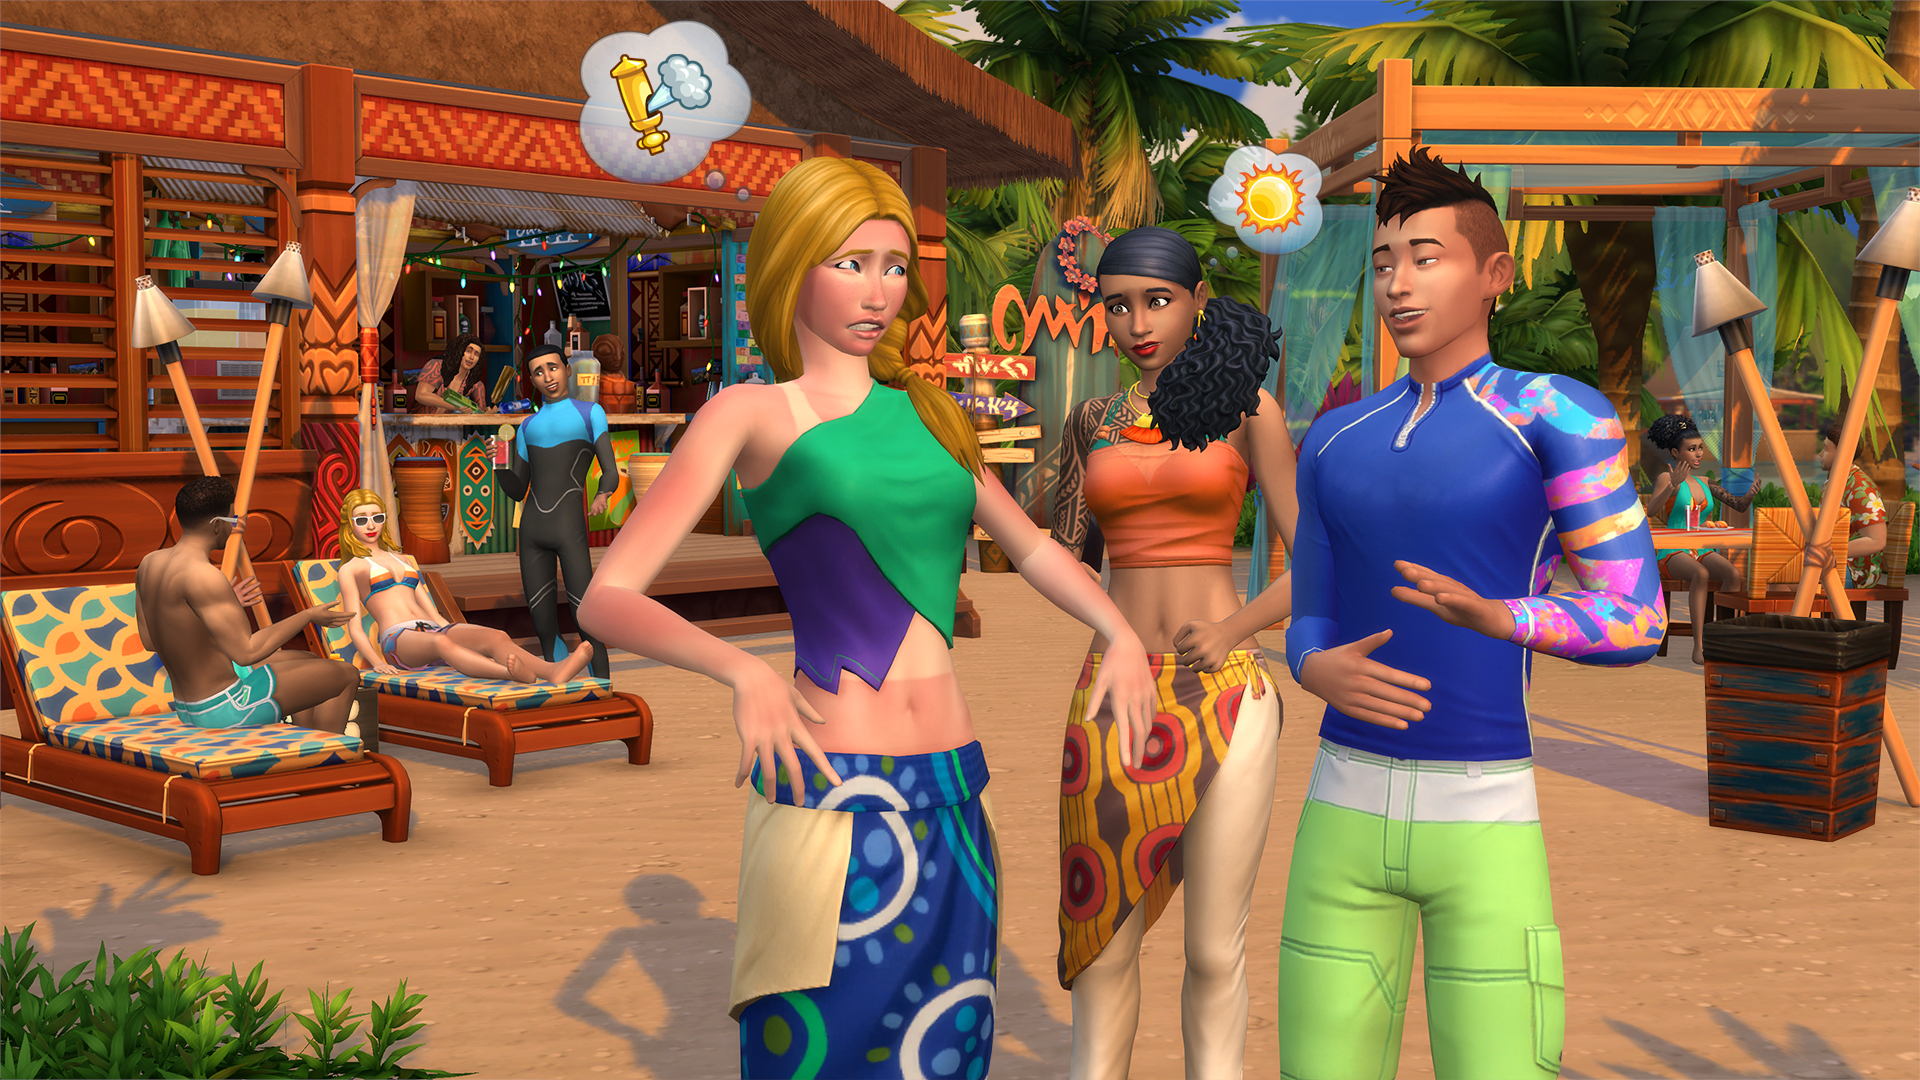 the-sims-5-news,-multiplayer-rumors-and-everything-we-know